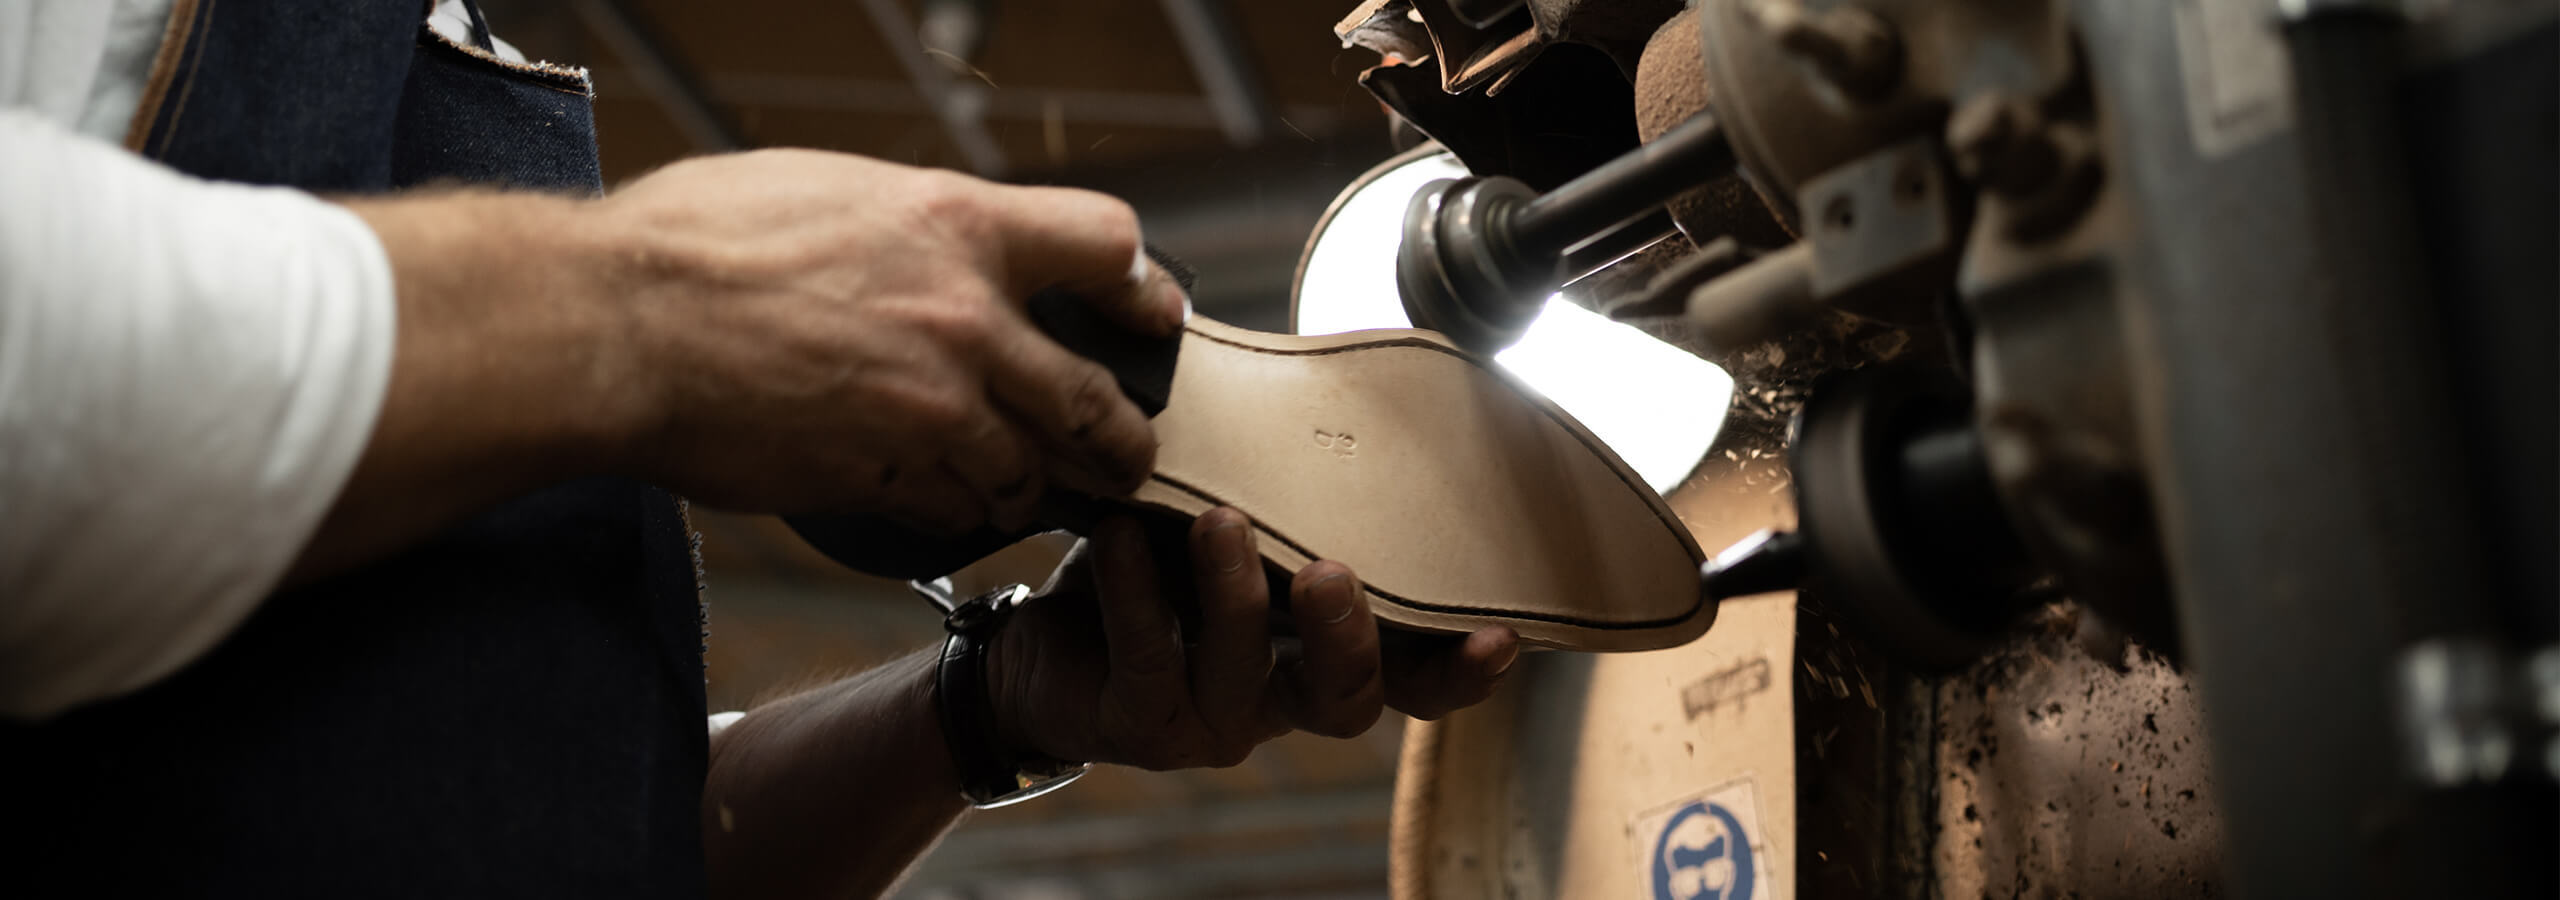 R.M.Williams boots handcrafted in Australia since 1932.